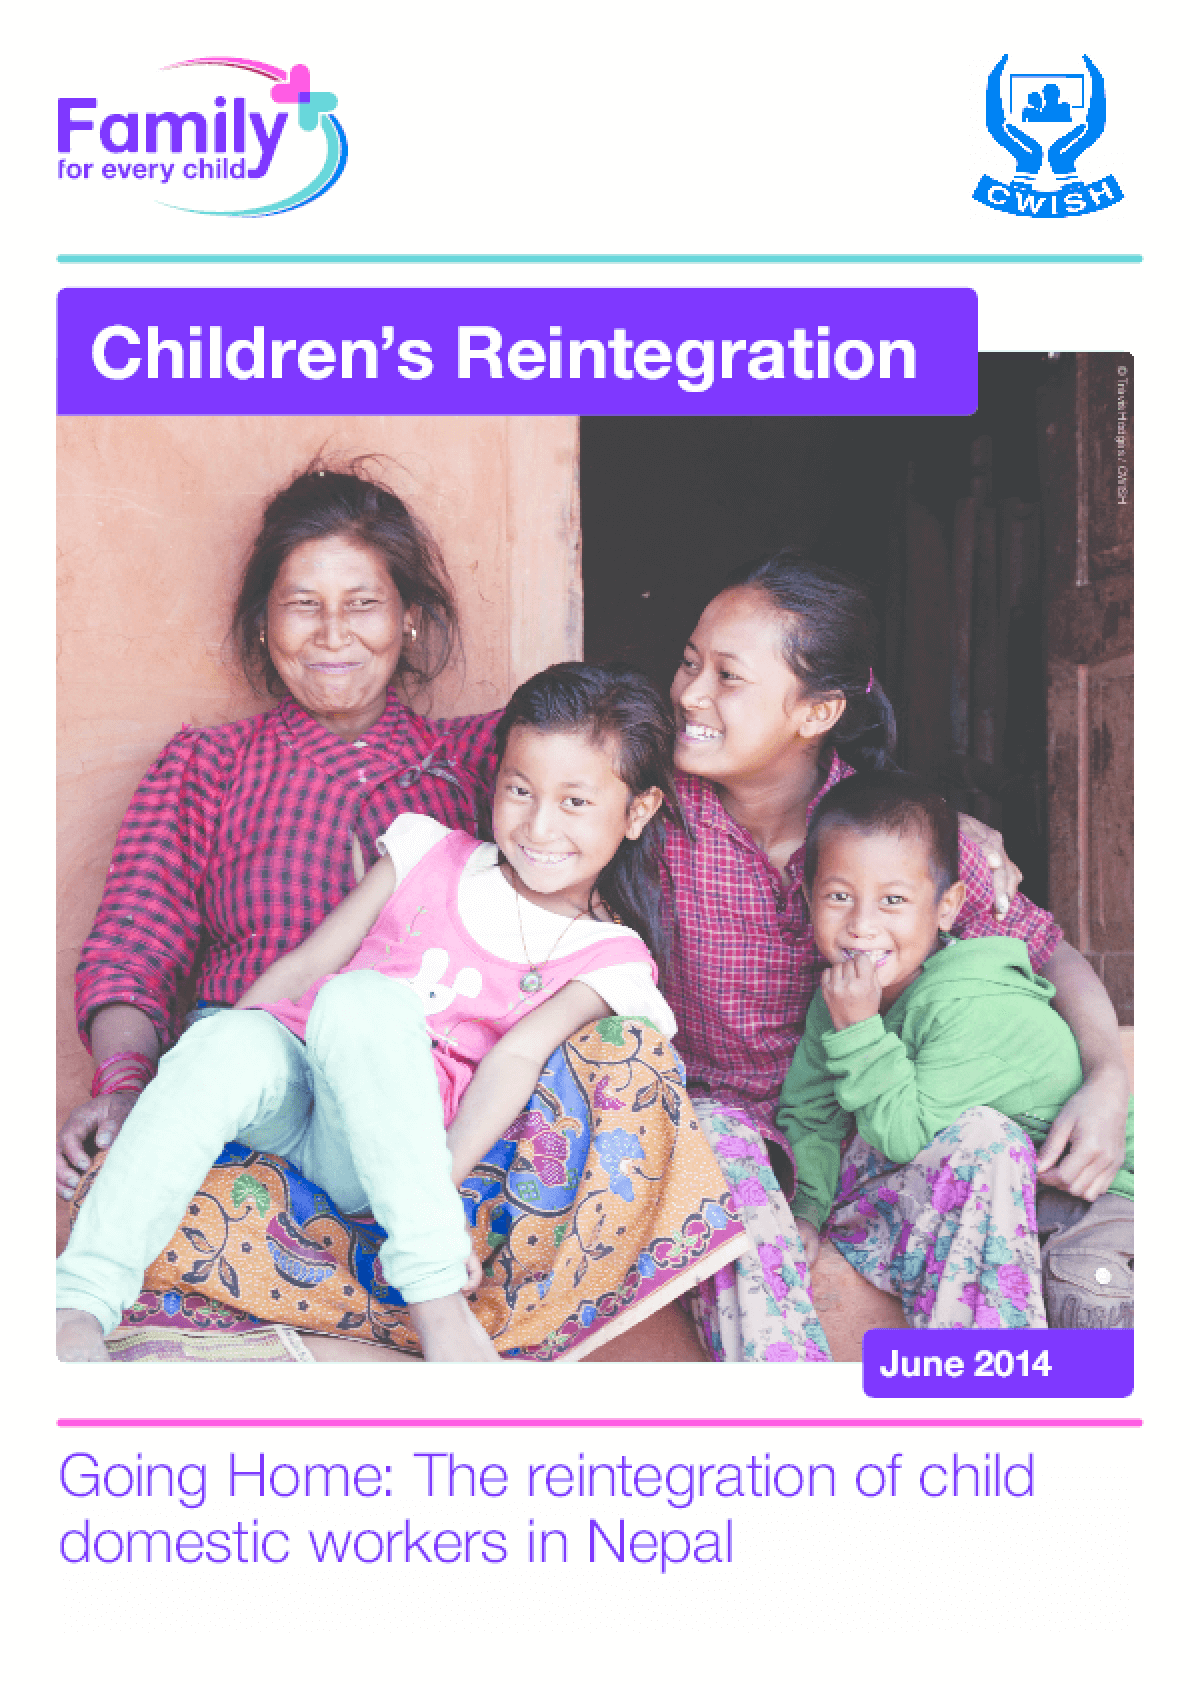 Going Home: The Reintegration of Child Domestic Workers in Nepal